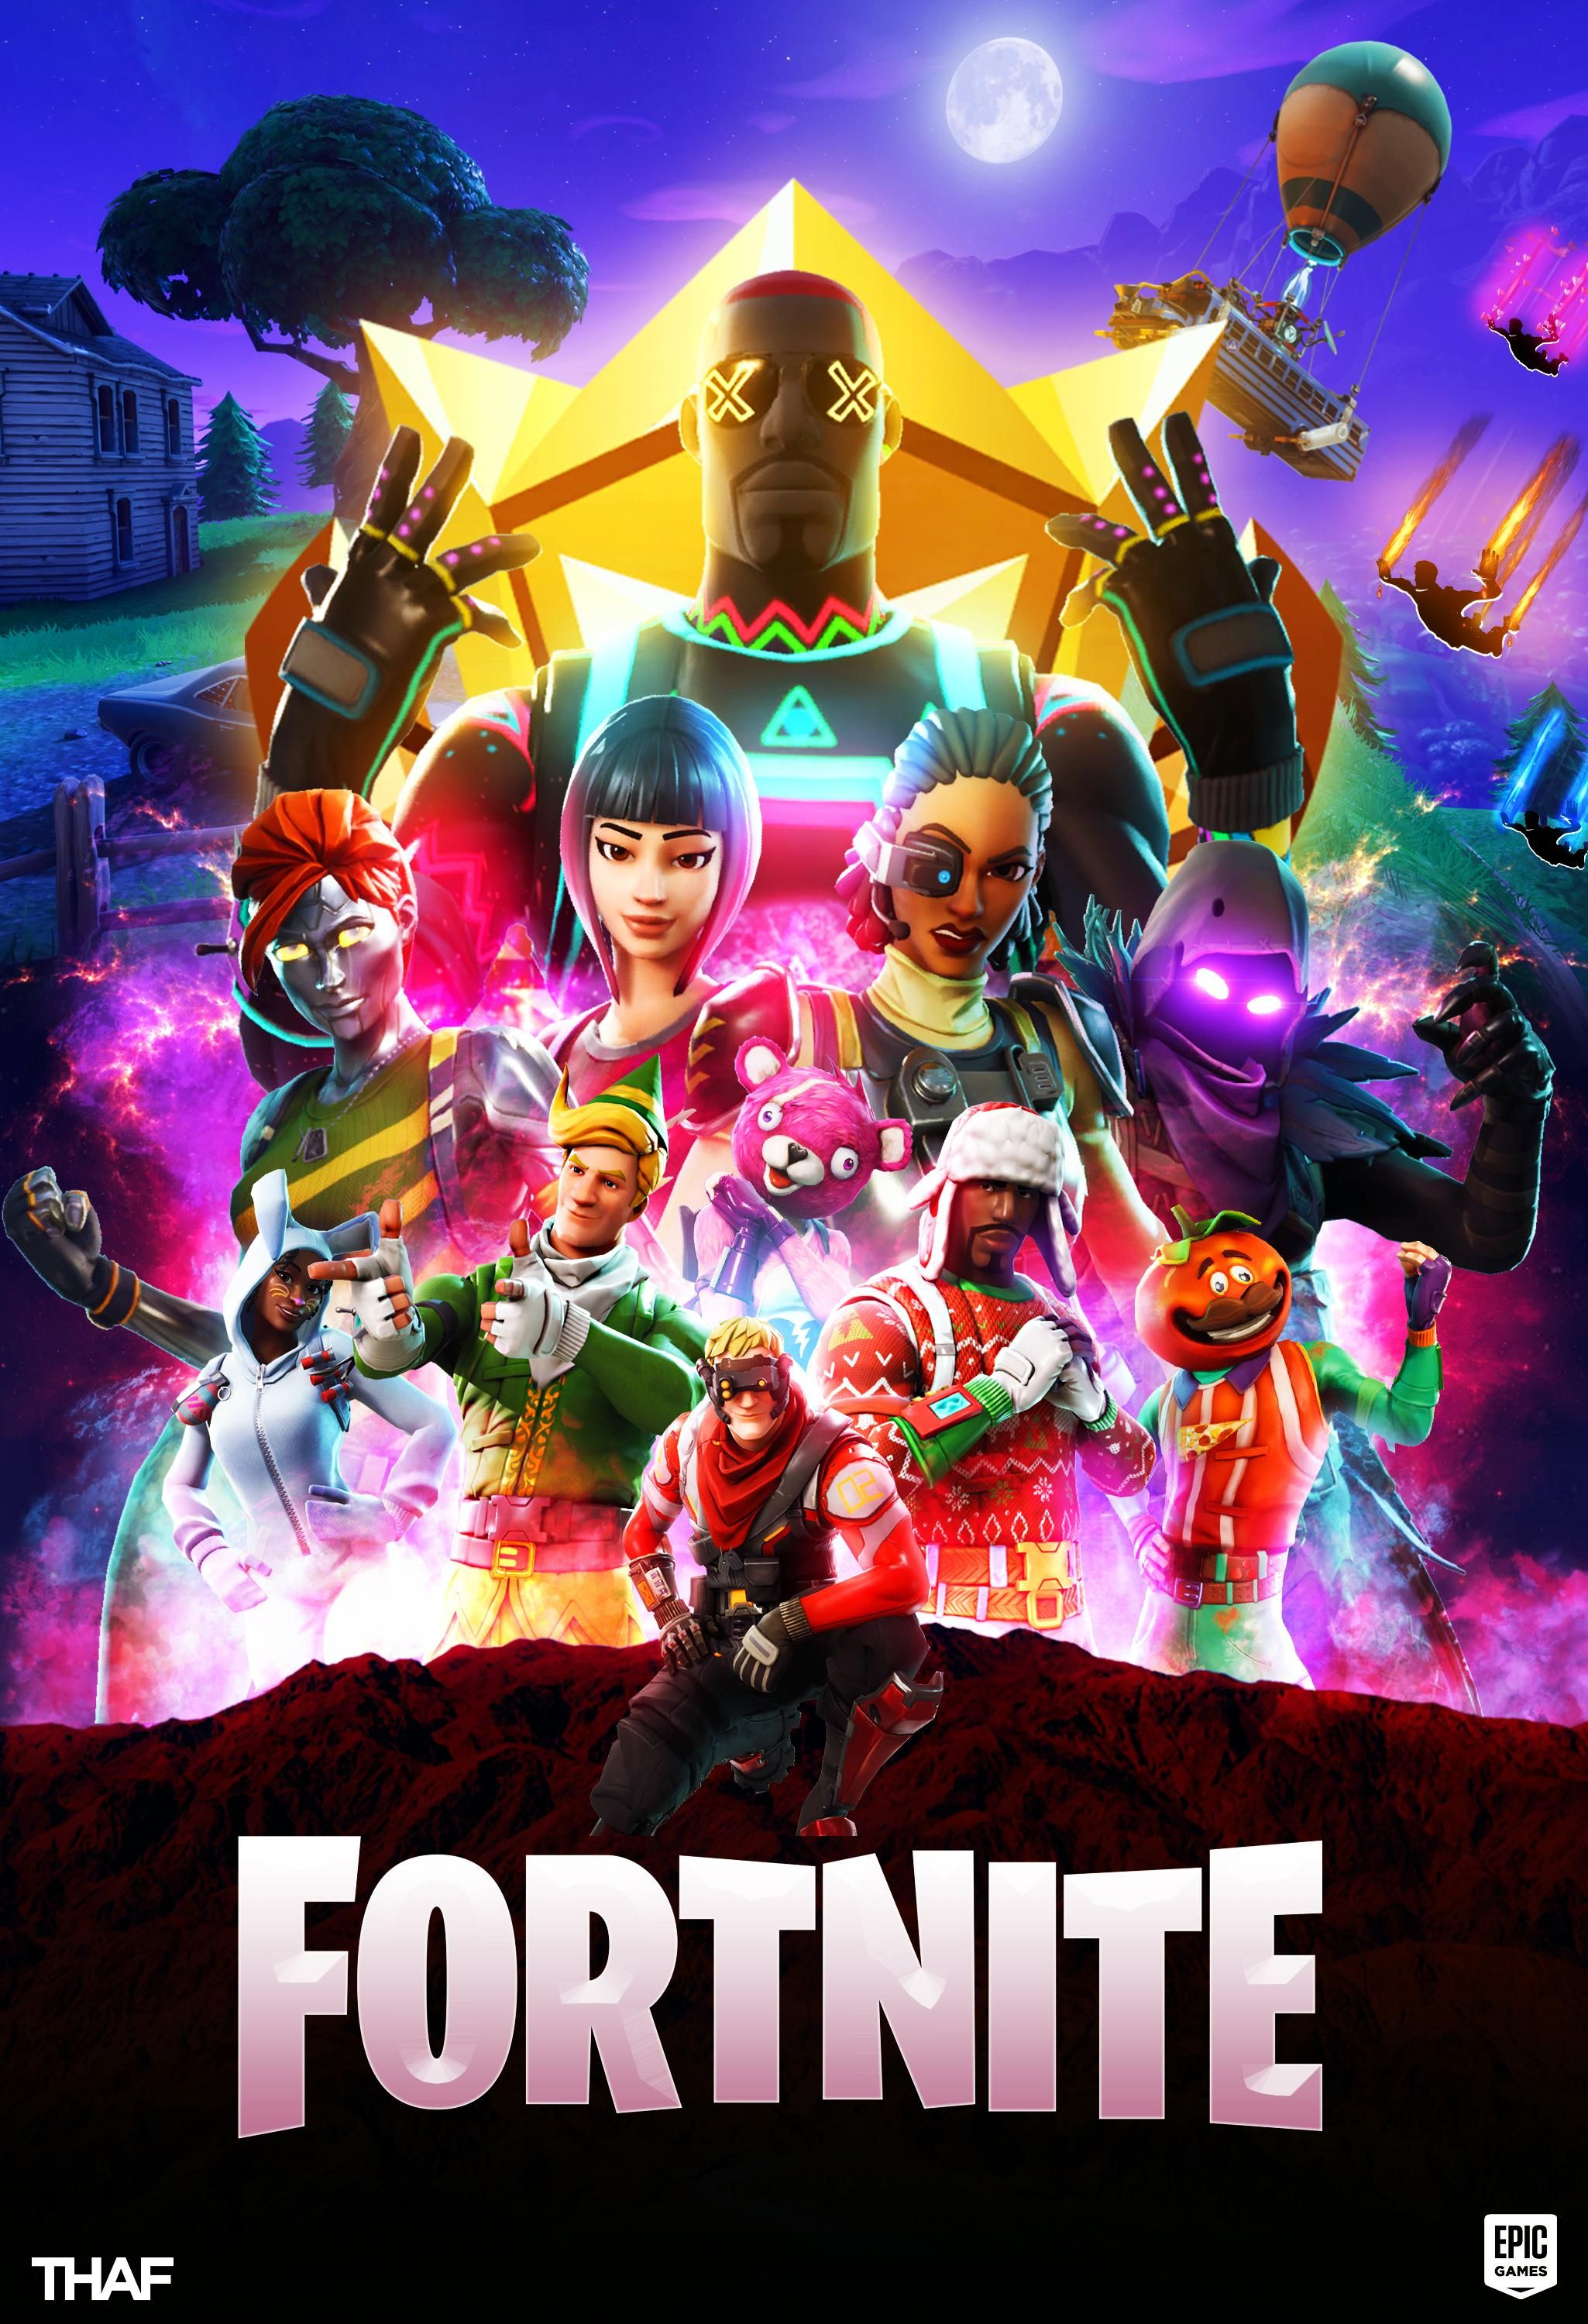 Free Download Made This Poster For Fortnite After The Avengers Crossover Was 2050x3000 For Your Desktop Mobile Tablet Explore 12 Super Striker Fortnite Wallpapers Super Striker Fortnite Wallpapers Brilliant